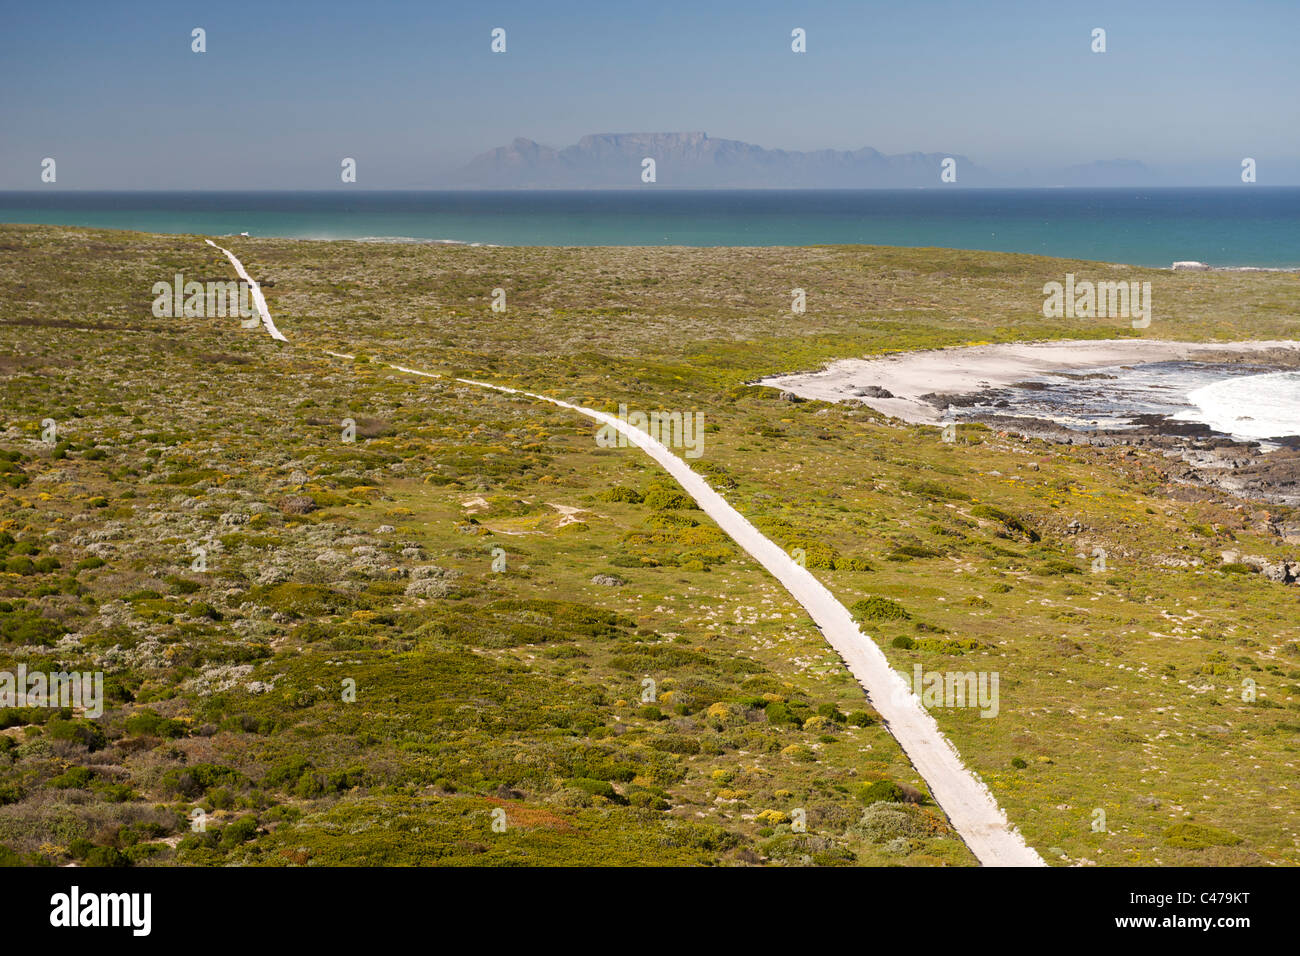 Aerial view of a dirt road running along Bokpunt on the west coast north of Cape Town in South Africa. - Stock Image